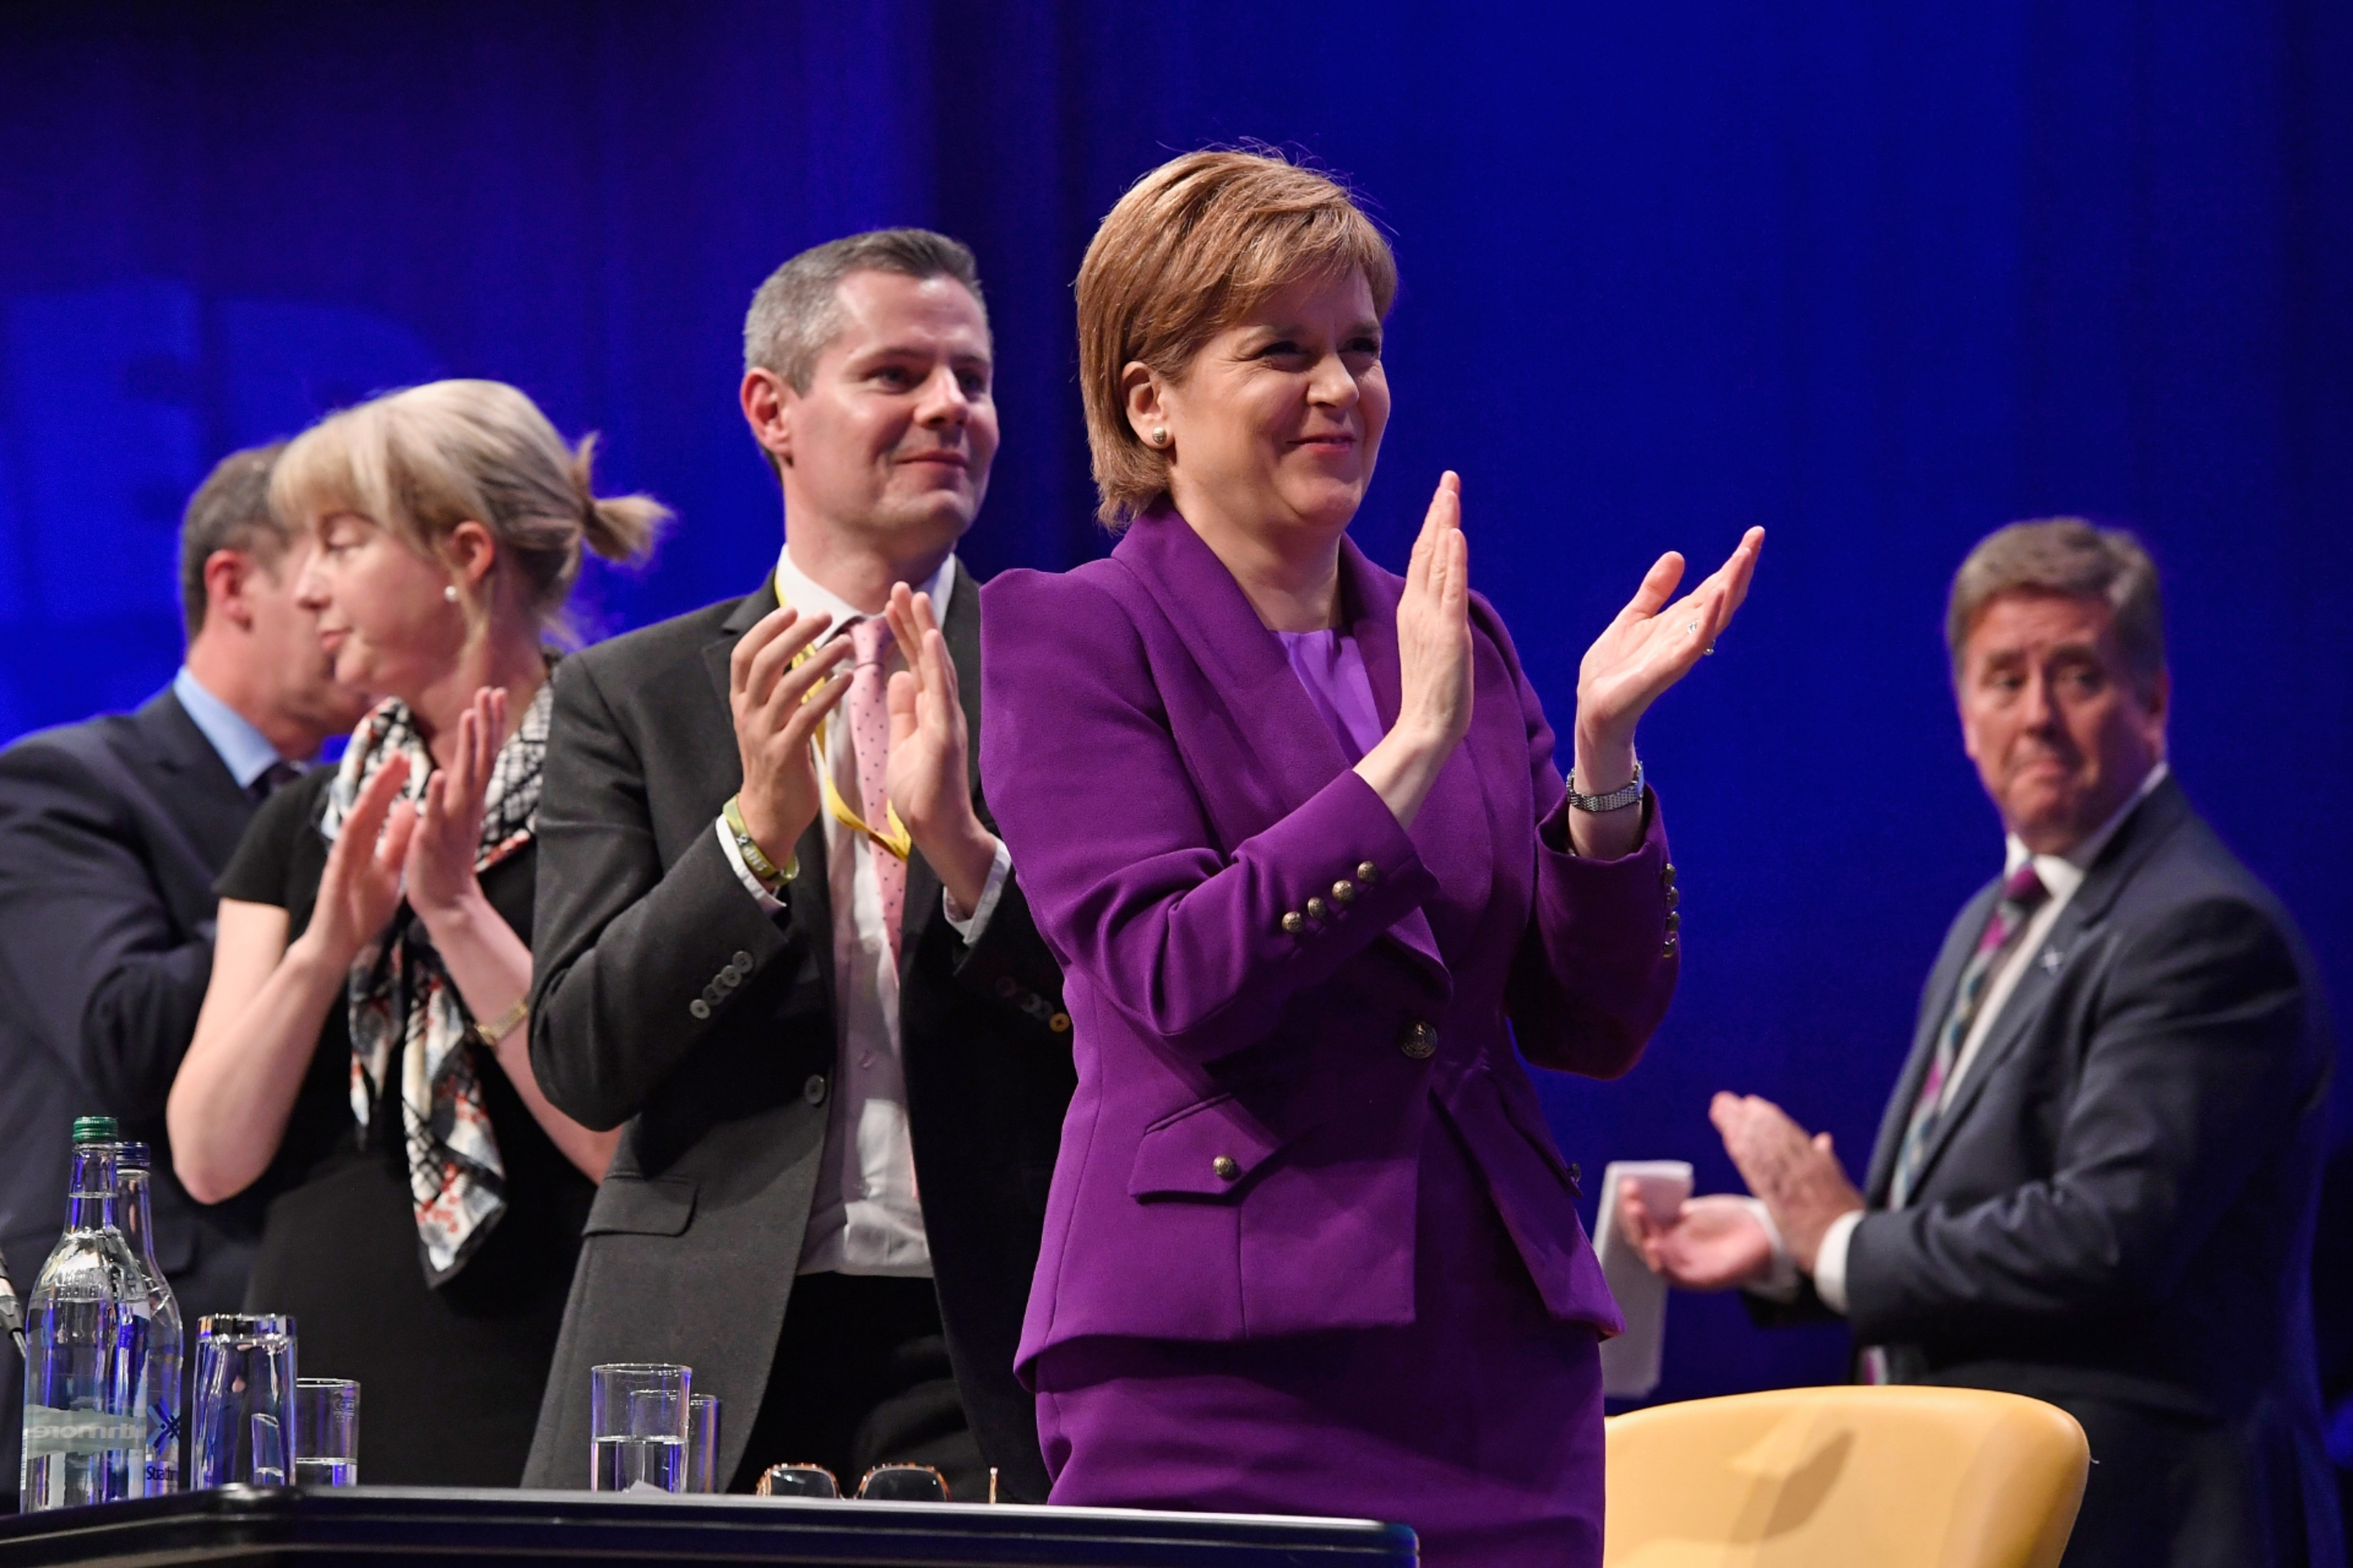 First Minister Nicola Sturgeon at the SNP autumn conference at which she announced the start of consultations for a second Scottish independence referendum.